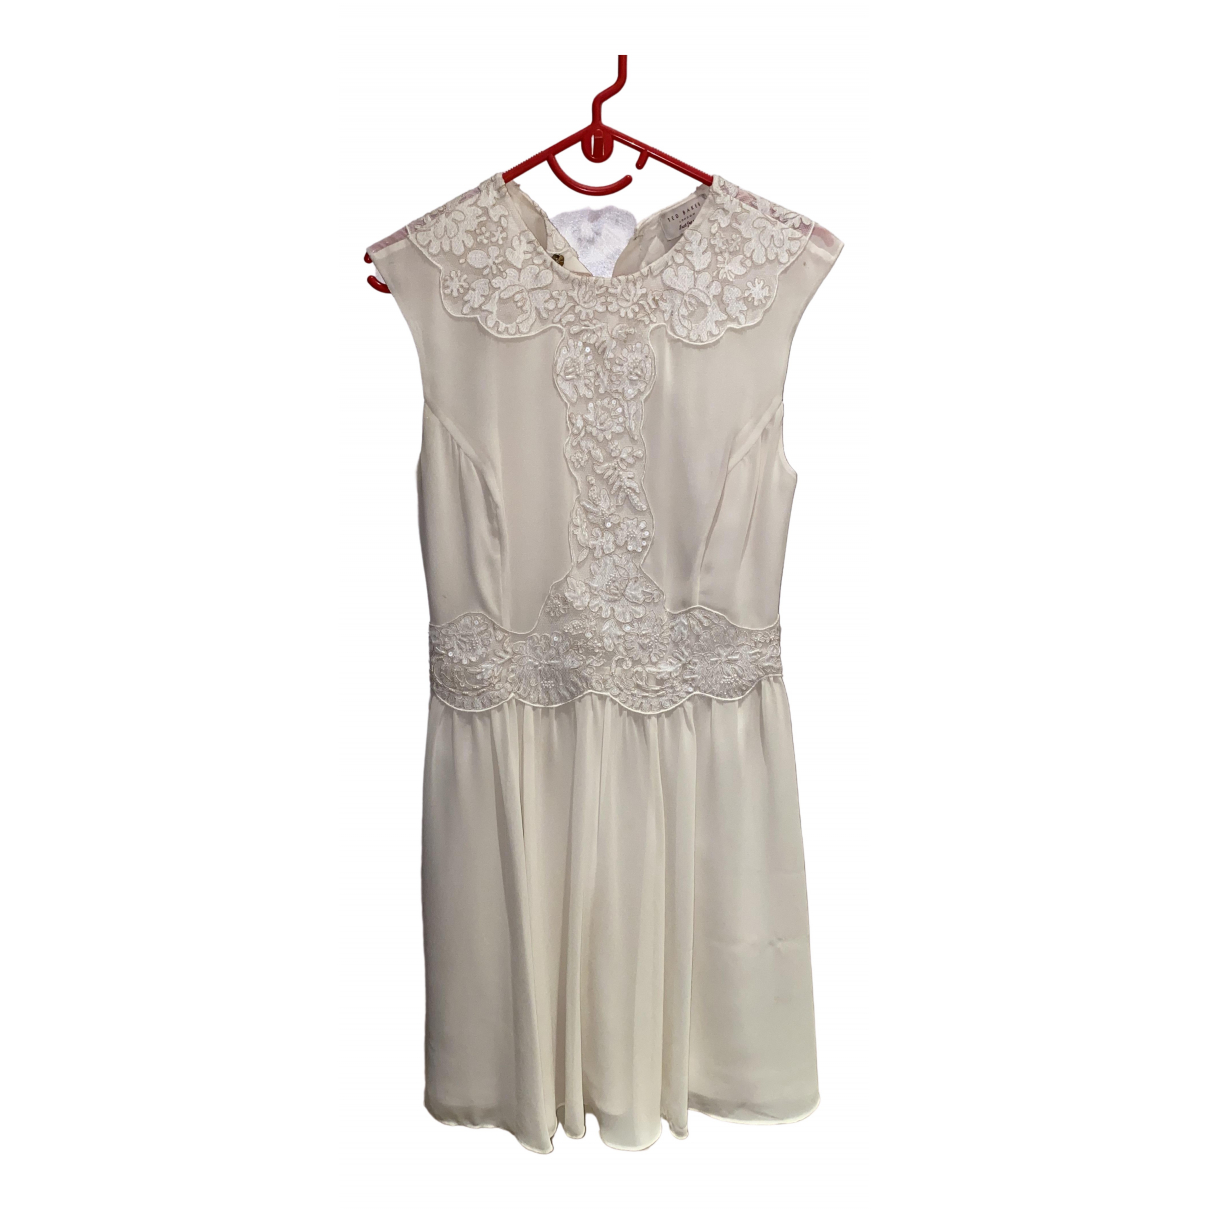 Ted Baker \N Ecru dress for Women 1 0-5